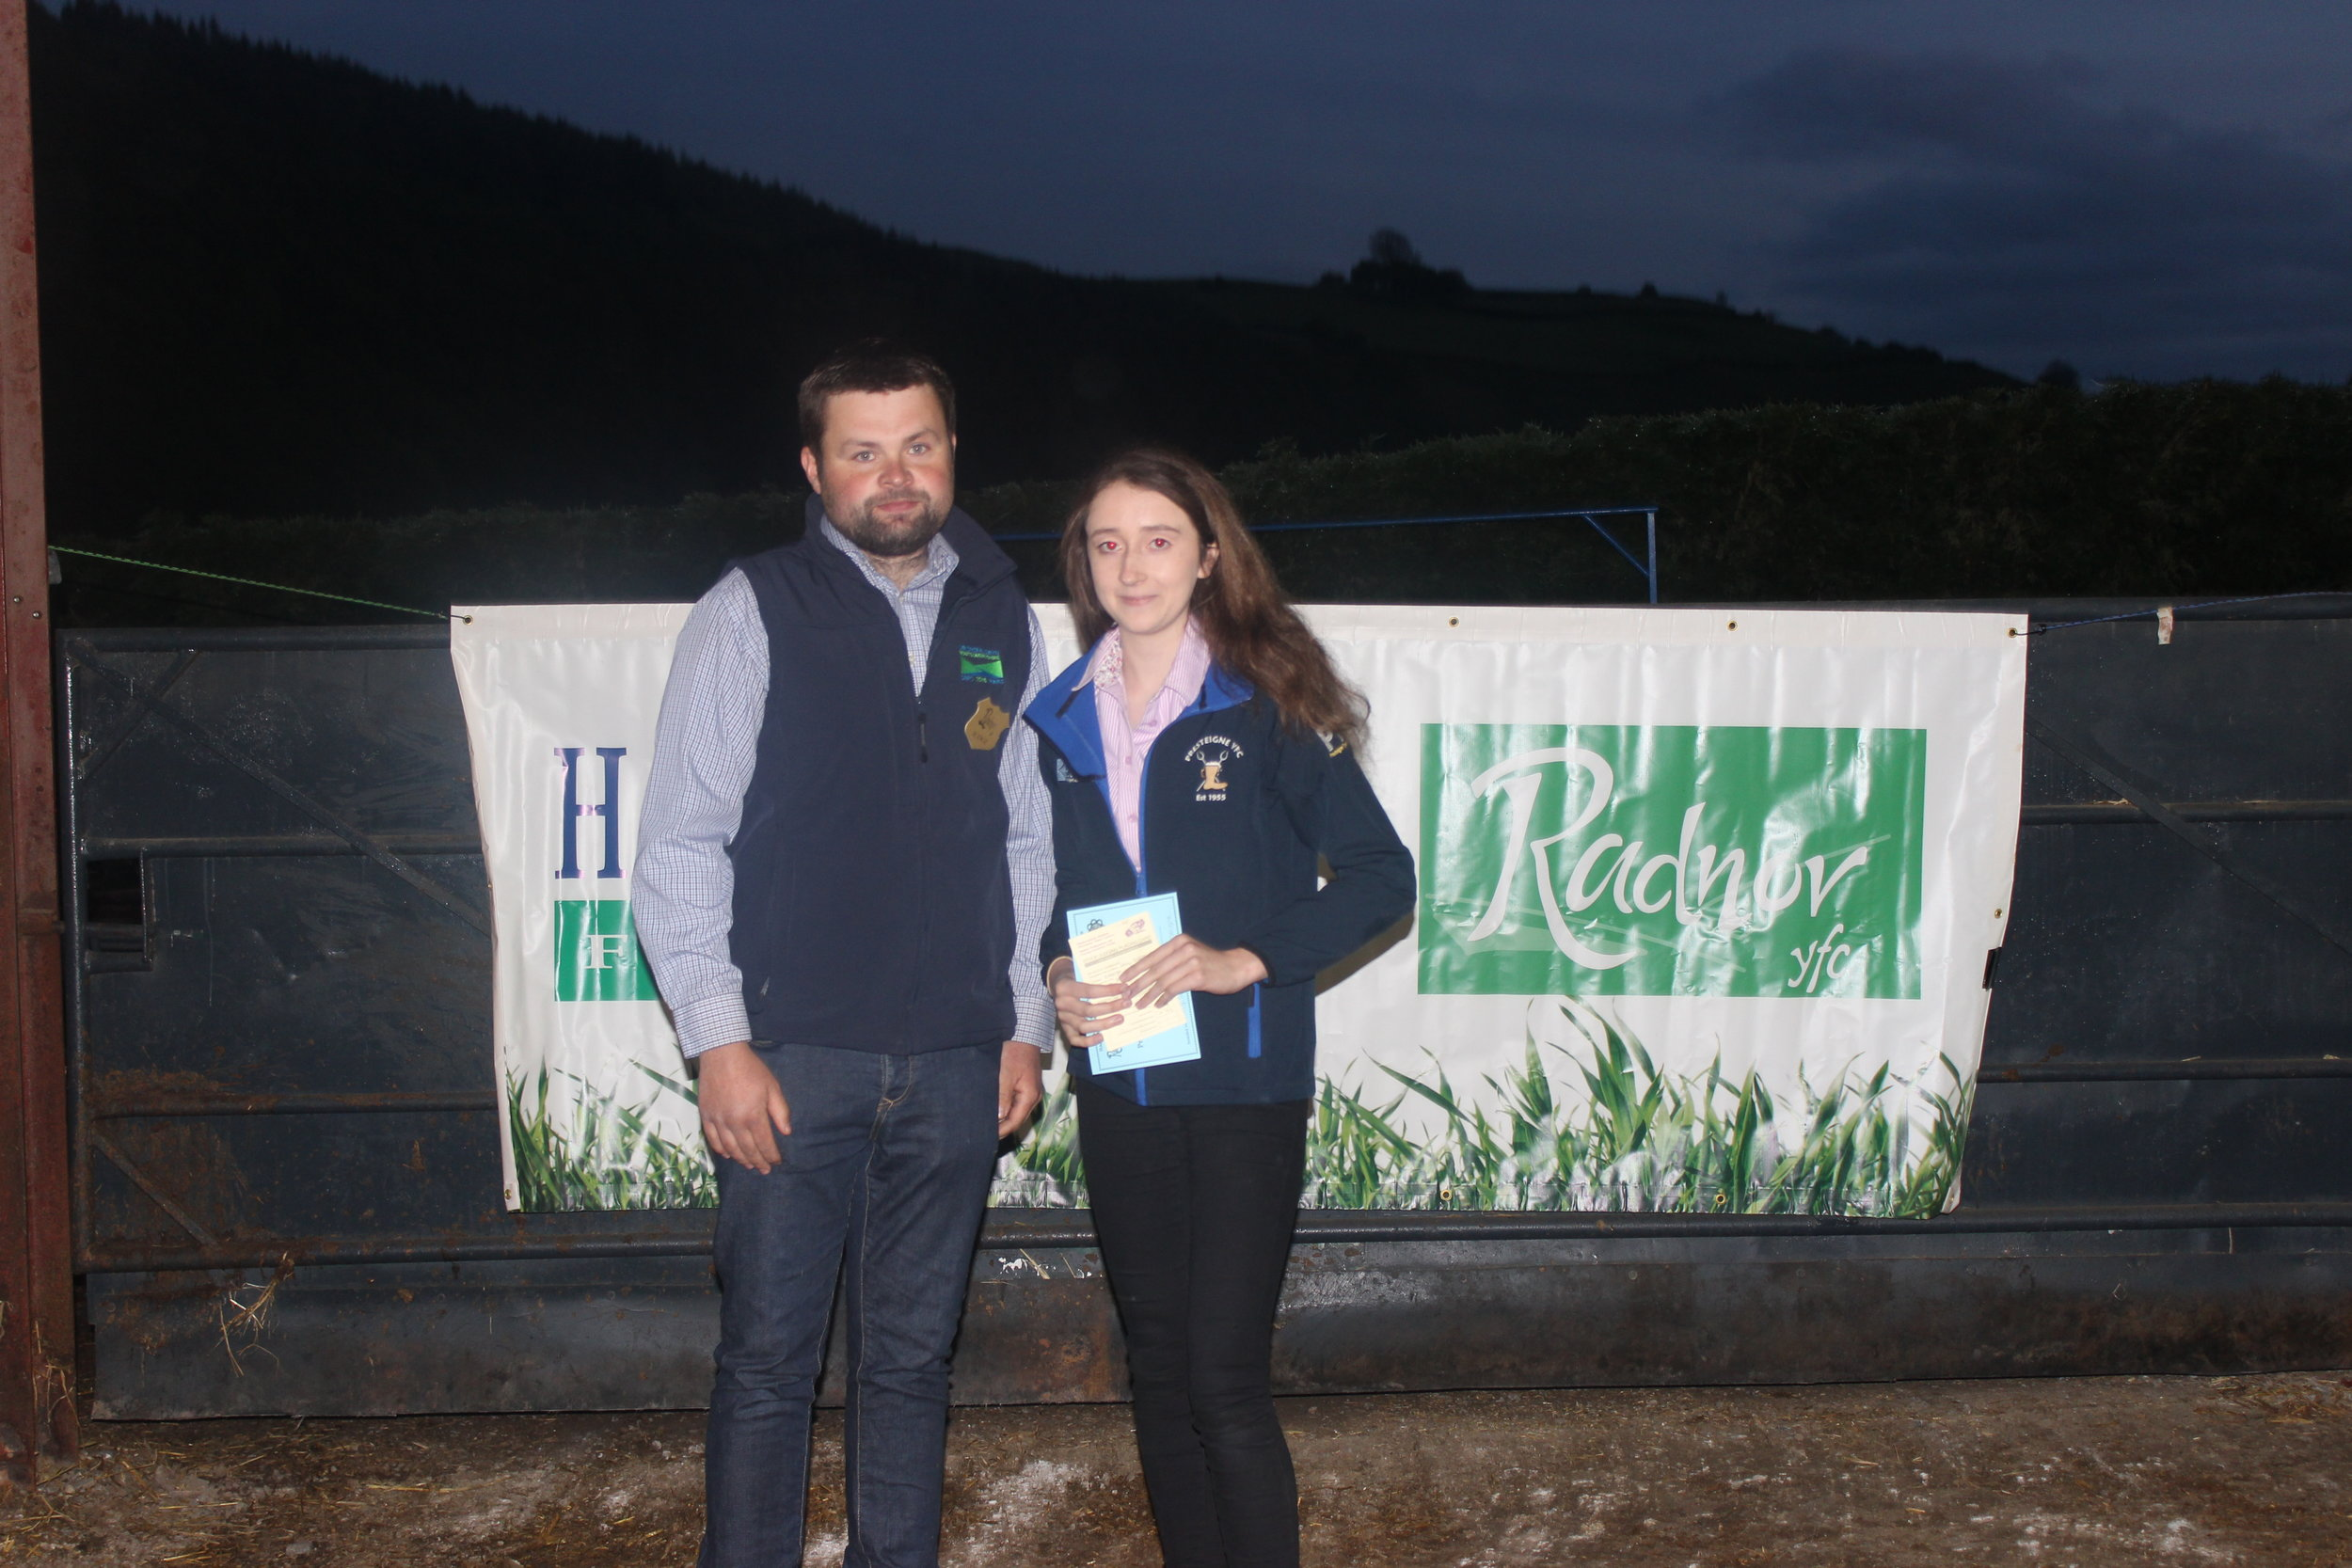 Sally Griffiths, Presteigne YFC - 2nd place in the under 16 Welsh Mule Stokcjudging with Judge John Roberts.